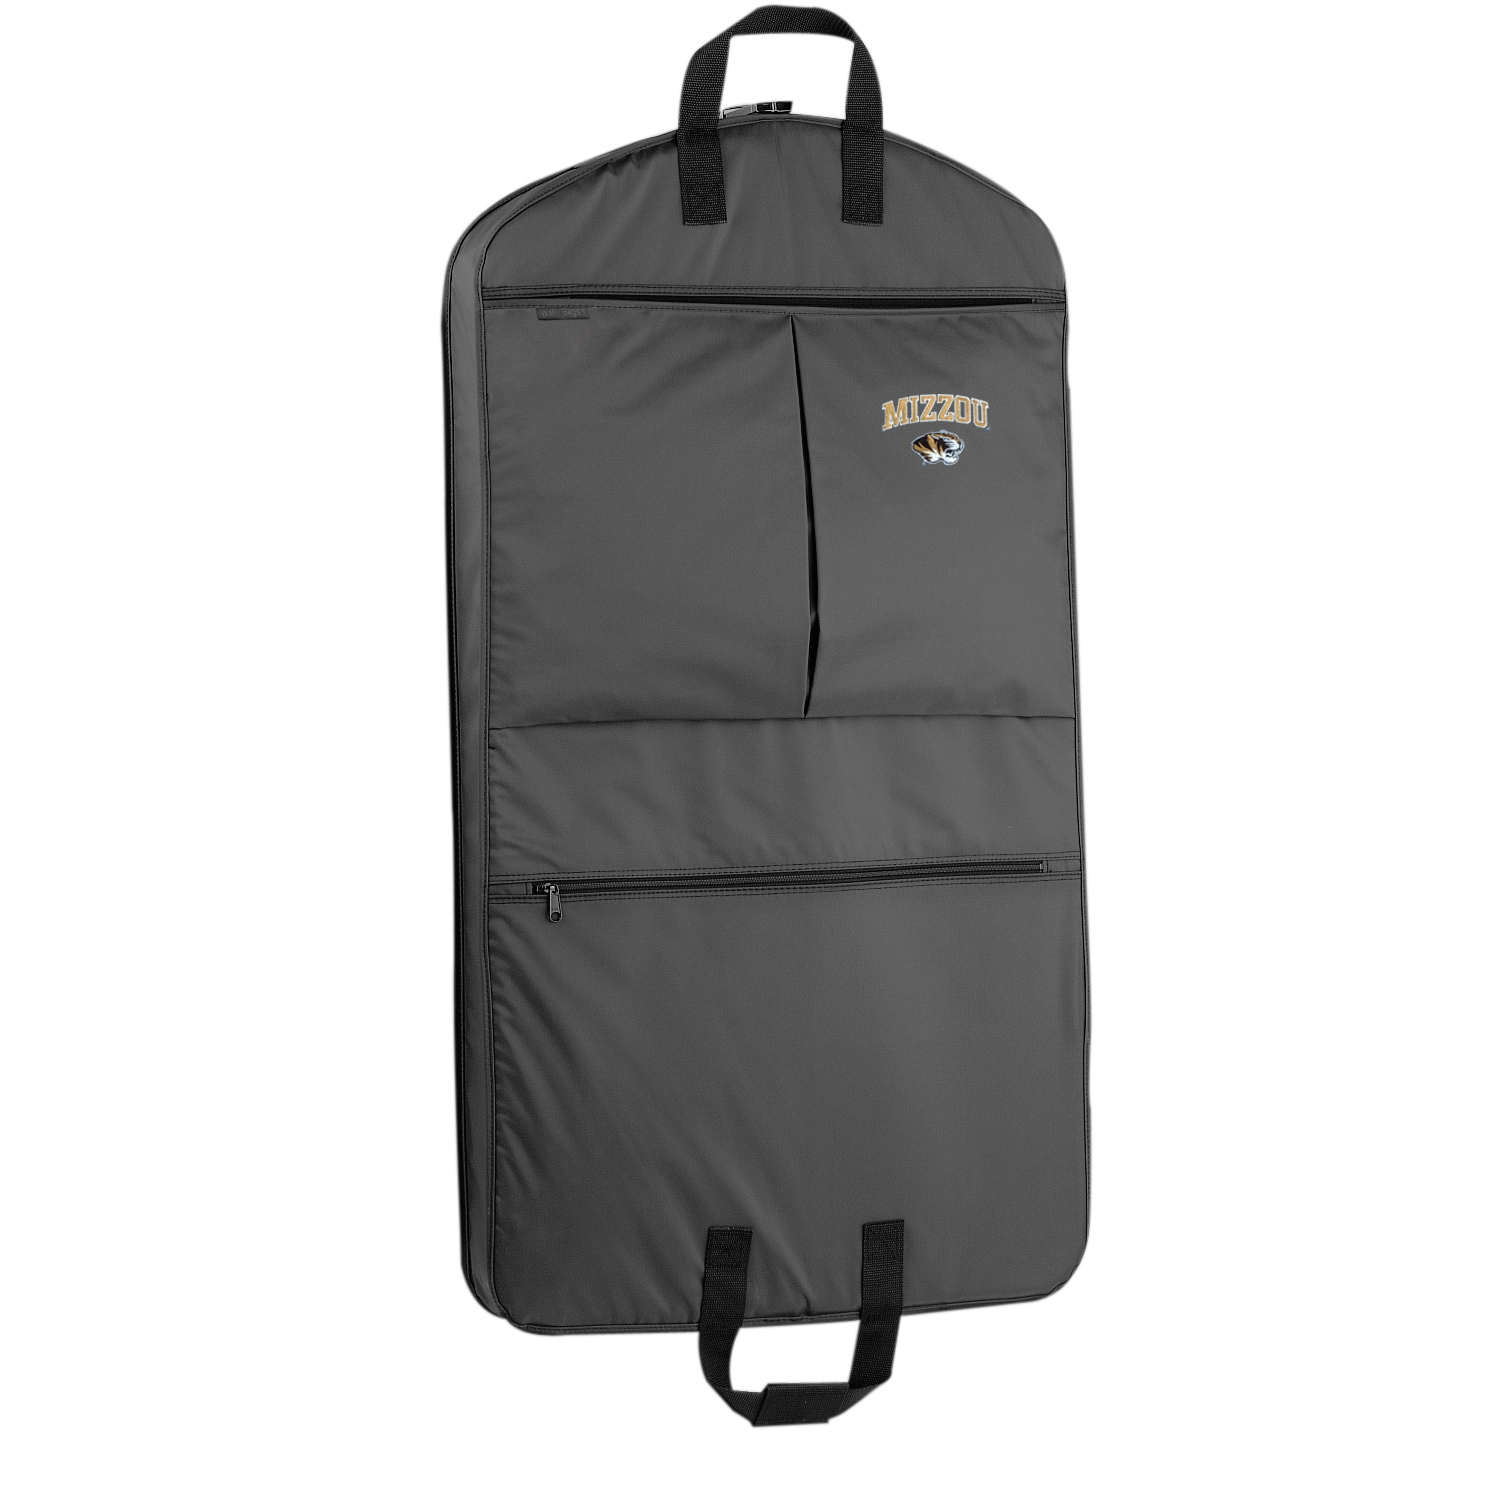 35b64cb652cf Shop WallyBags Missouri Tigers 40-inch Garment Bag With Pockets - Free  Shipping Today - Overstock.com - 12009748